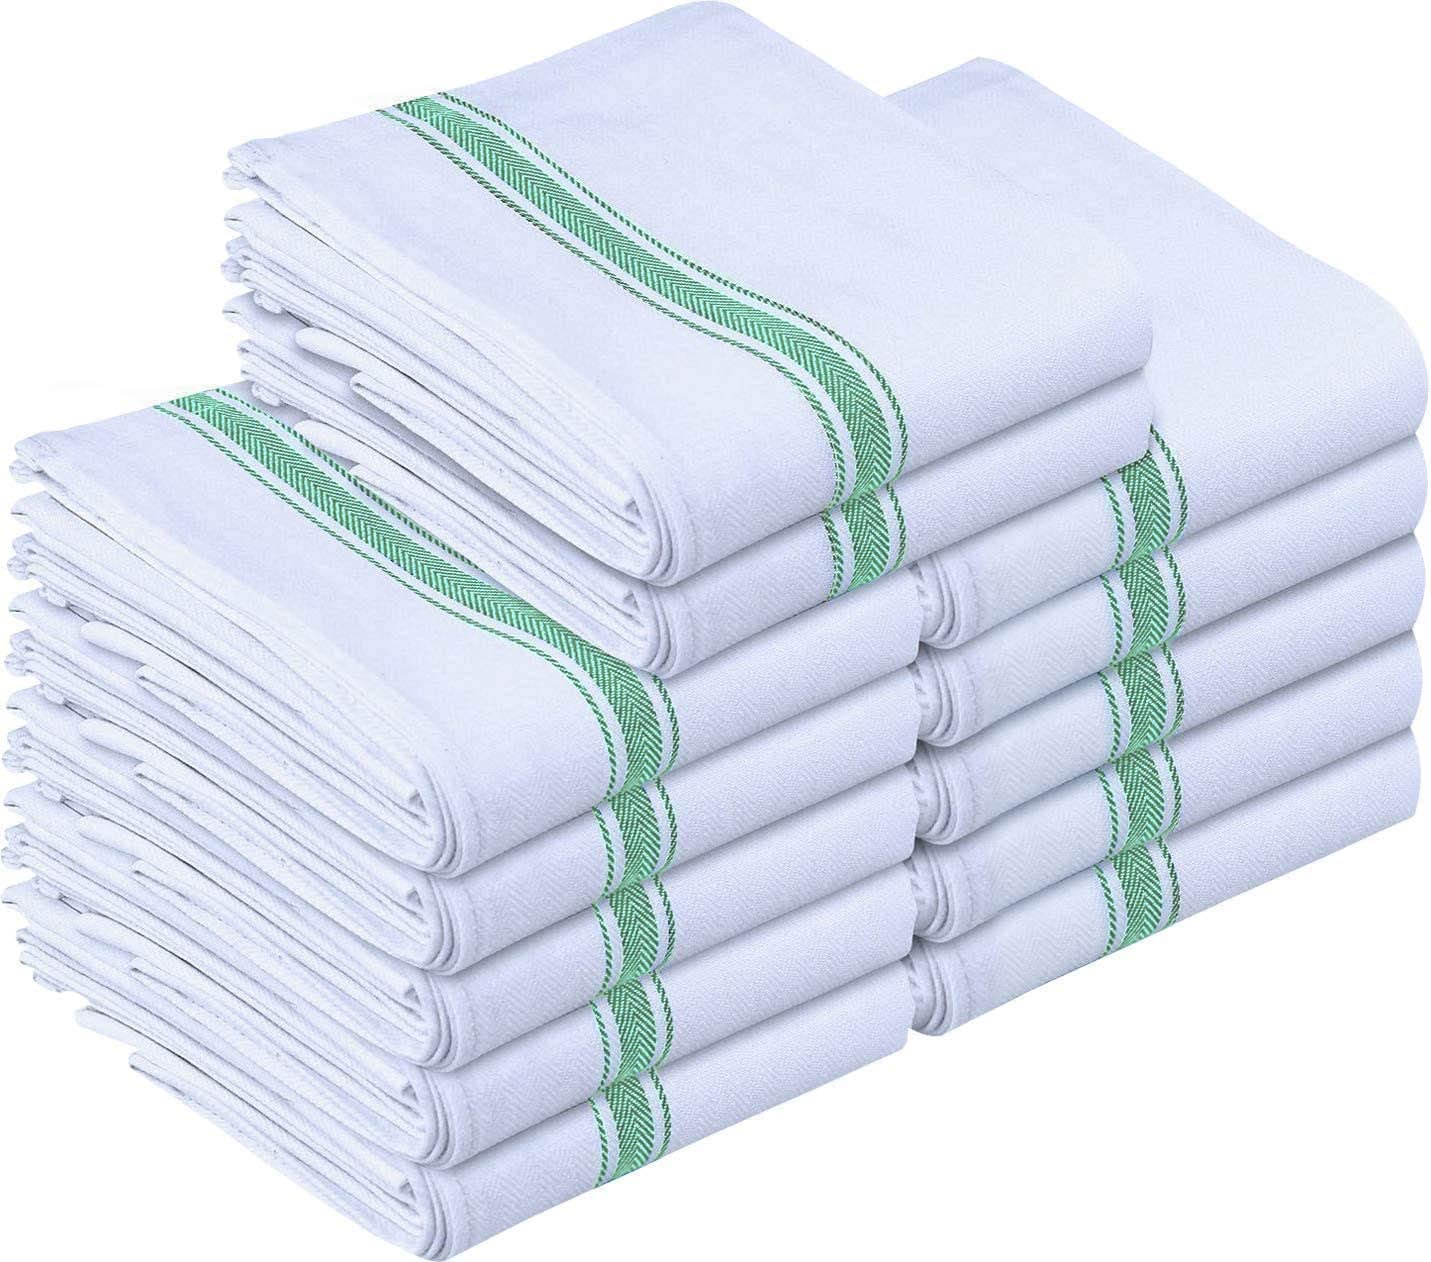 Utopia Towels 12 Pack Dish Towels - Resuable Kitchen Towels -15 x 25 Inches Ultra Soft Cotton Dish Cloths - Super Absorbent Cleaning Cloths, Green